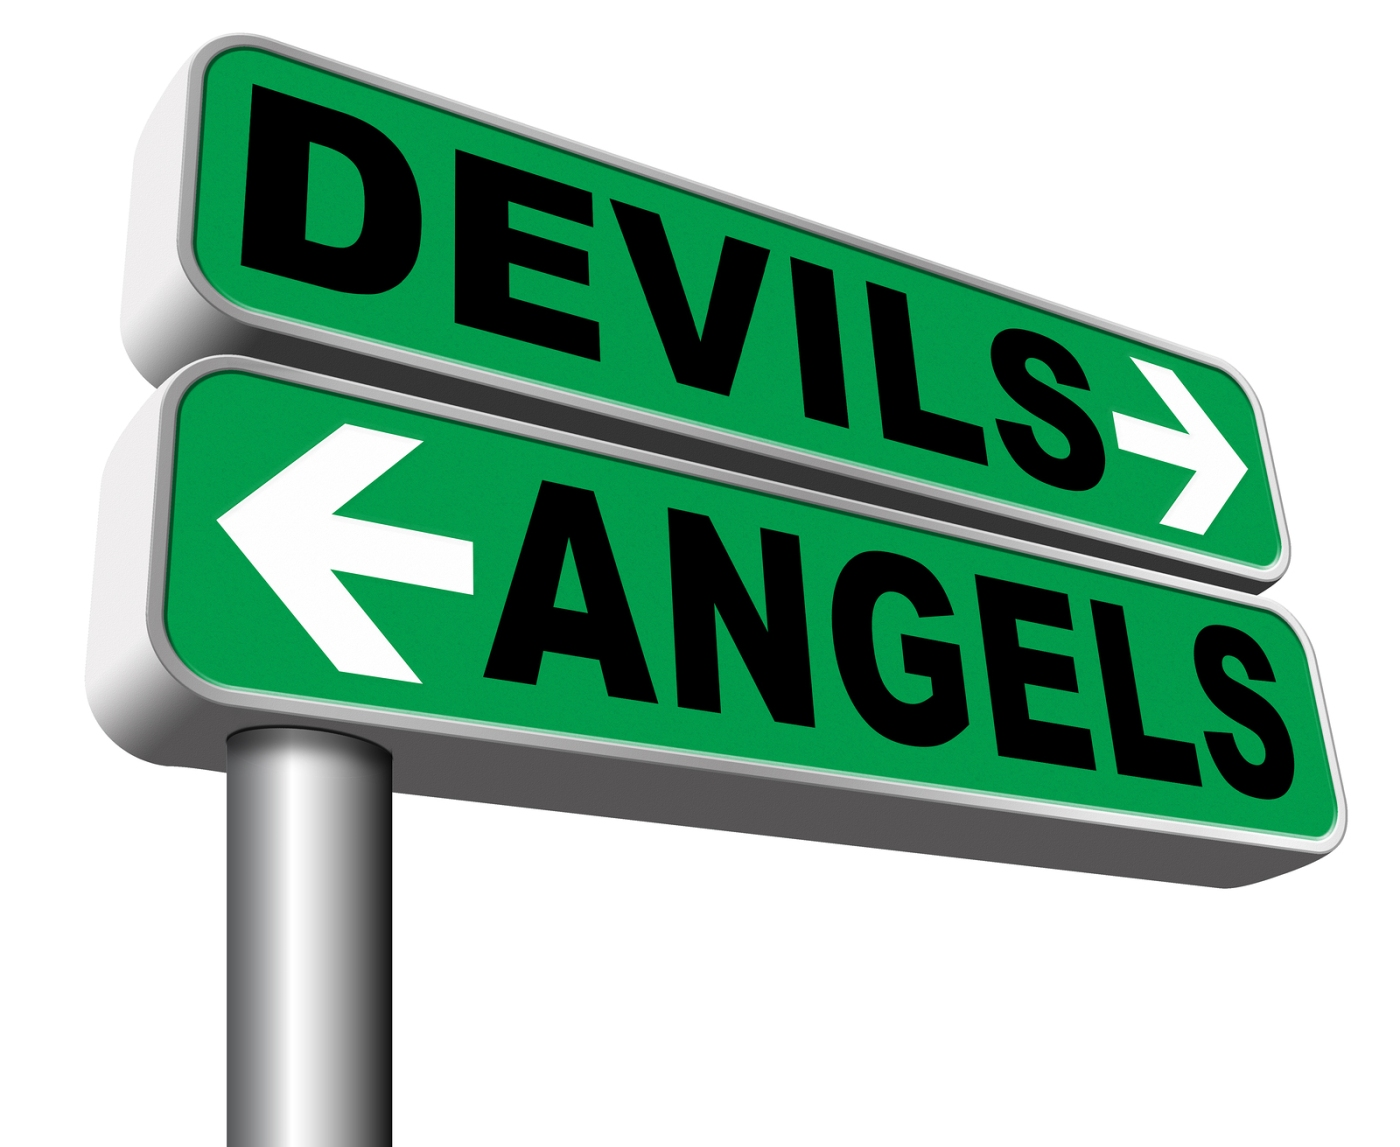 devil and angel good or evil bad heaven and hell road sign arrow 3D illustration, isolated, on white